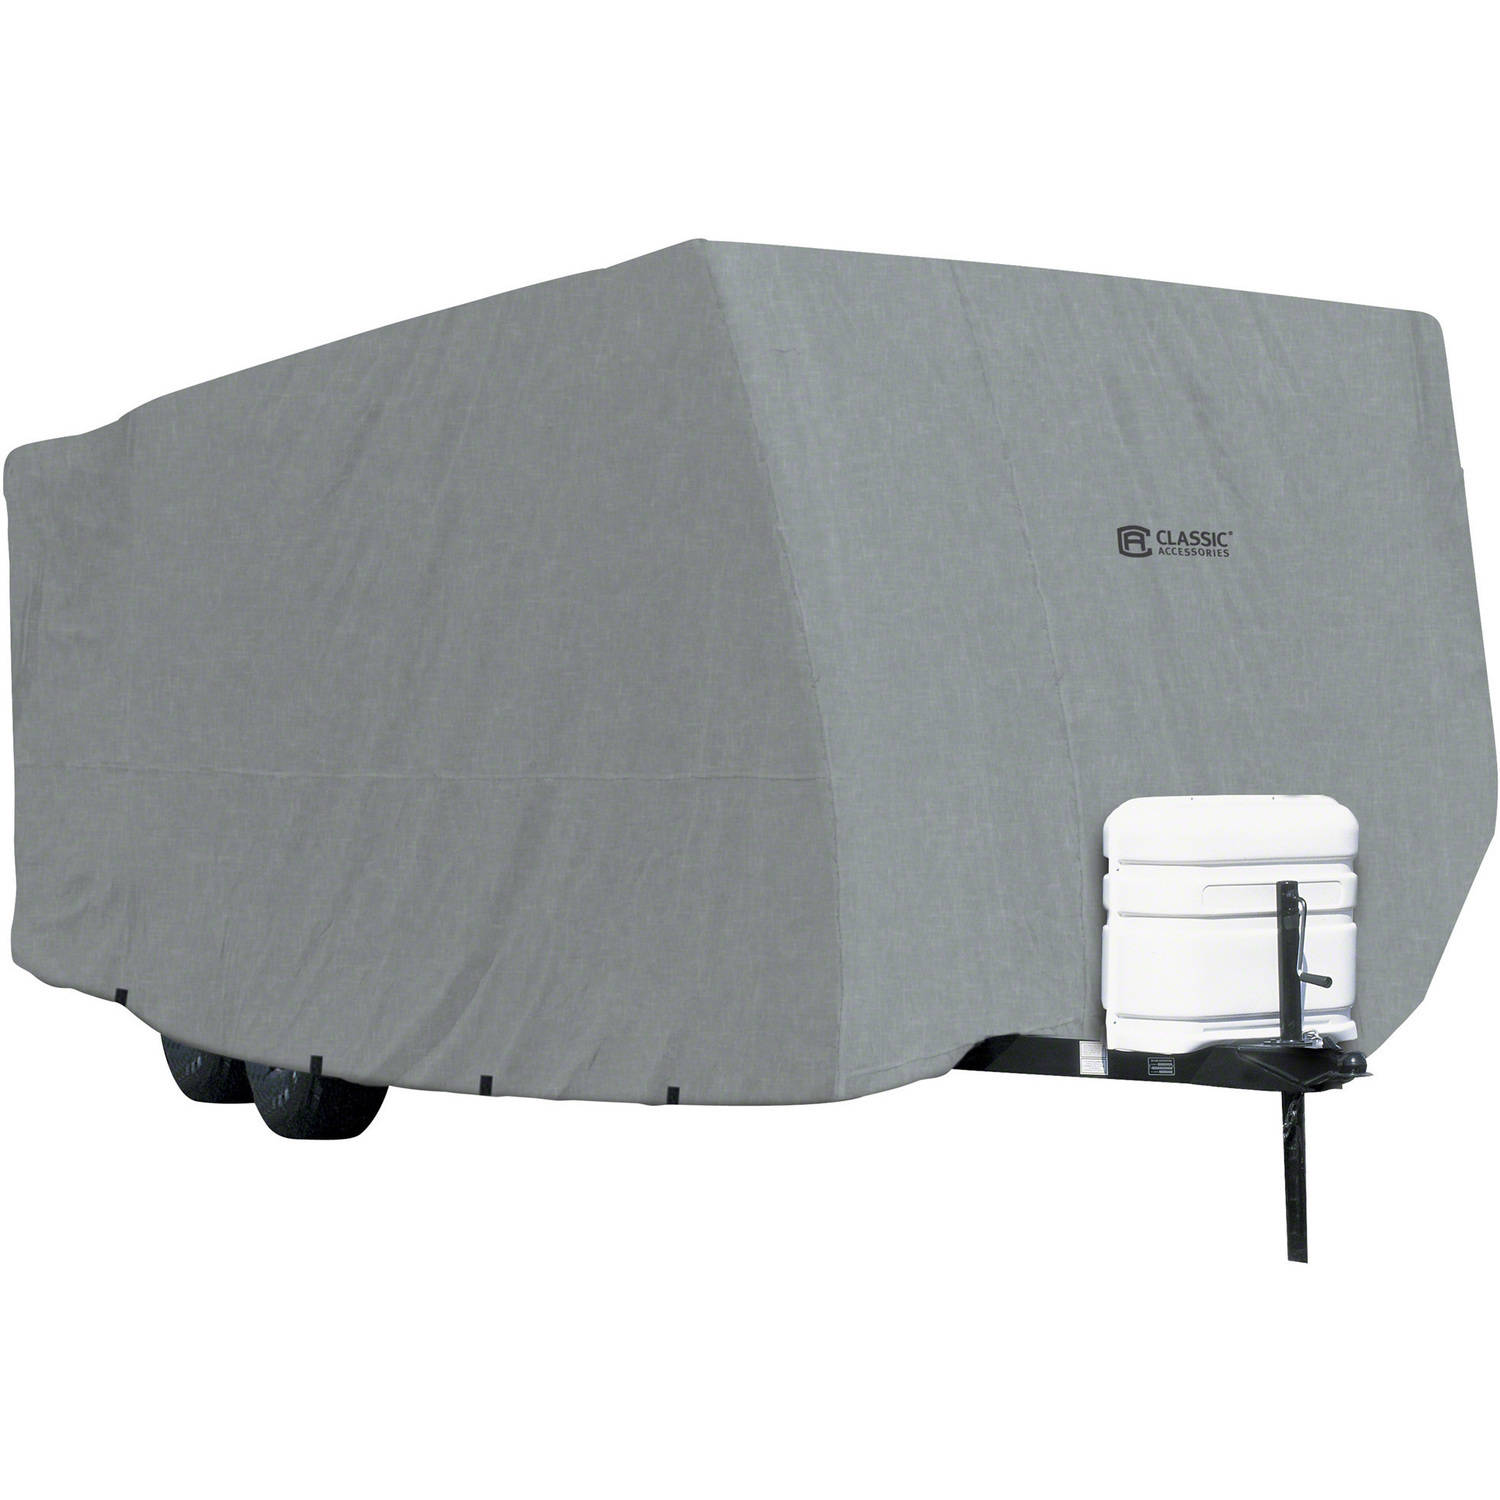 Classic Accessories OverDrive PolyPRO 1 Travel Trailer RV Cover Fits 20  38 RVs  Breathable